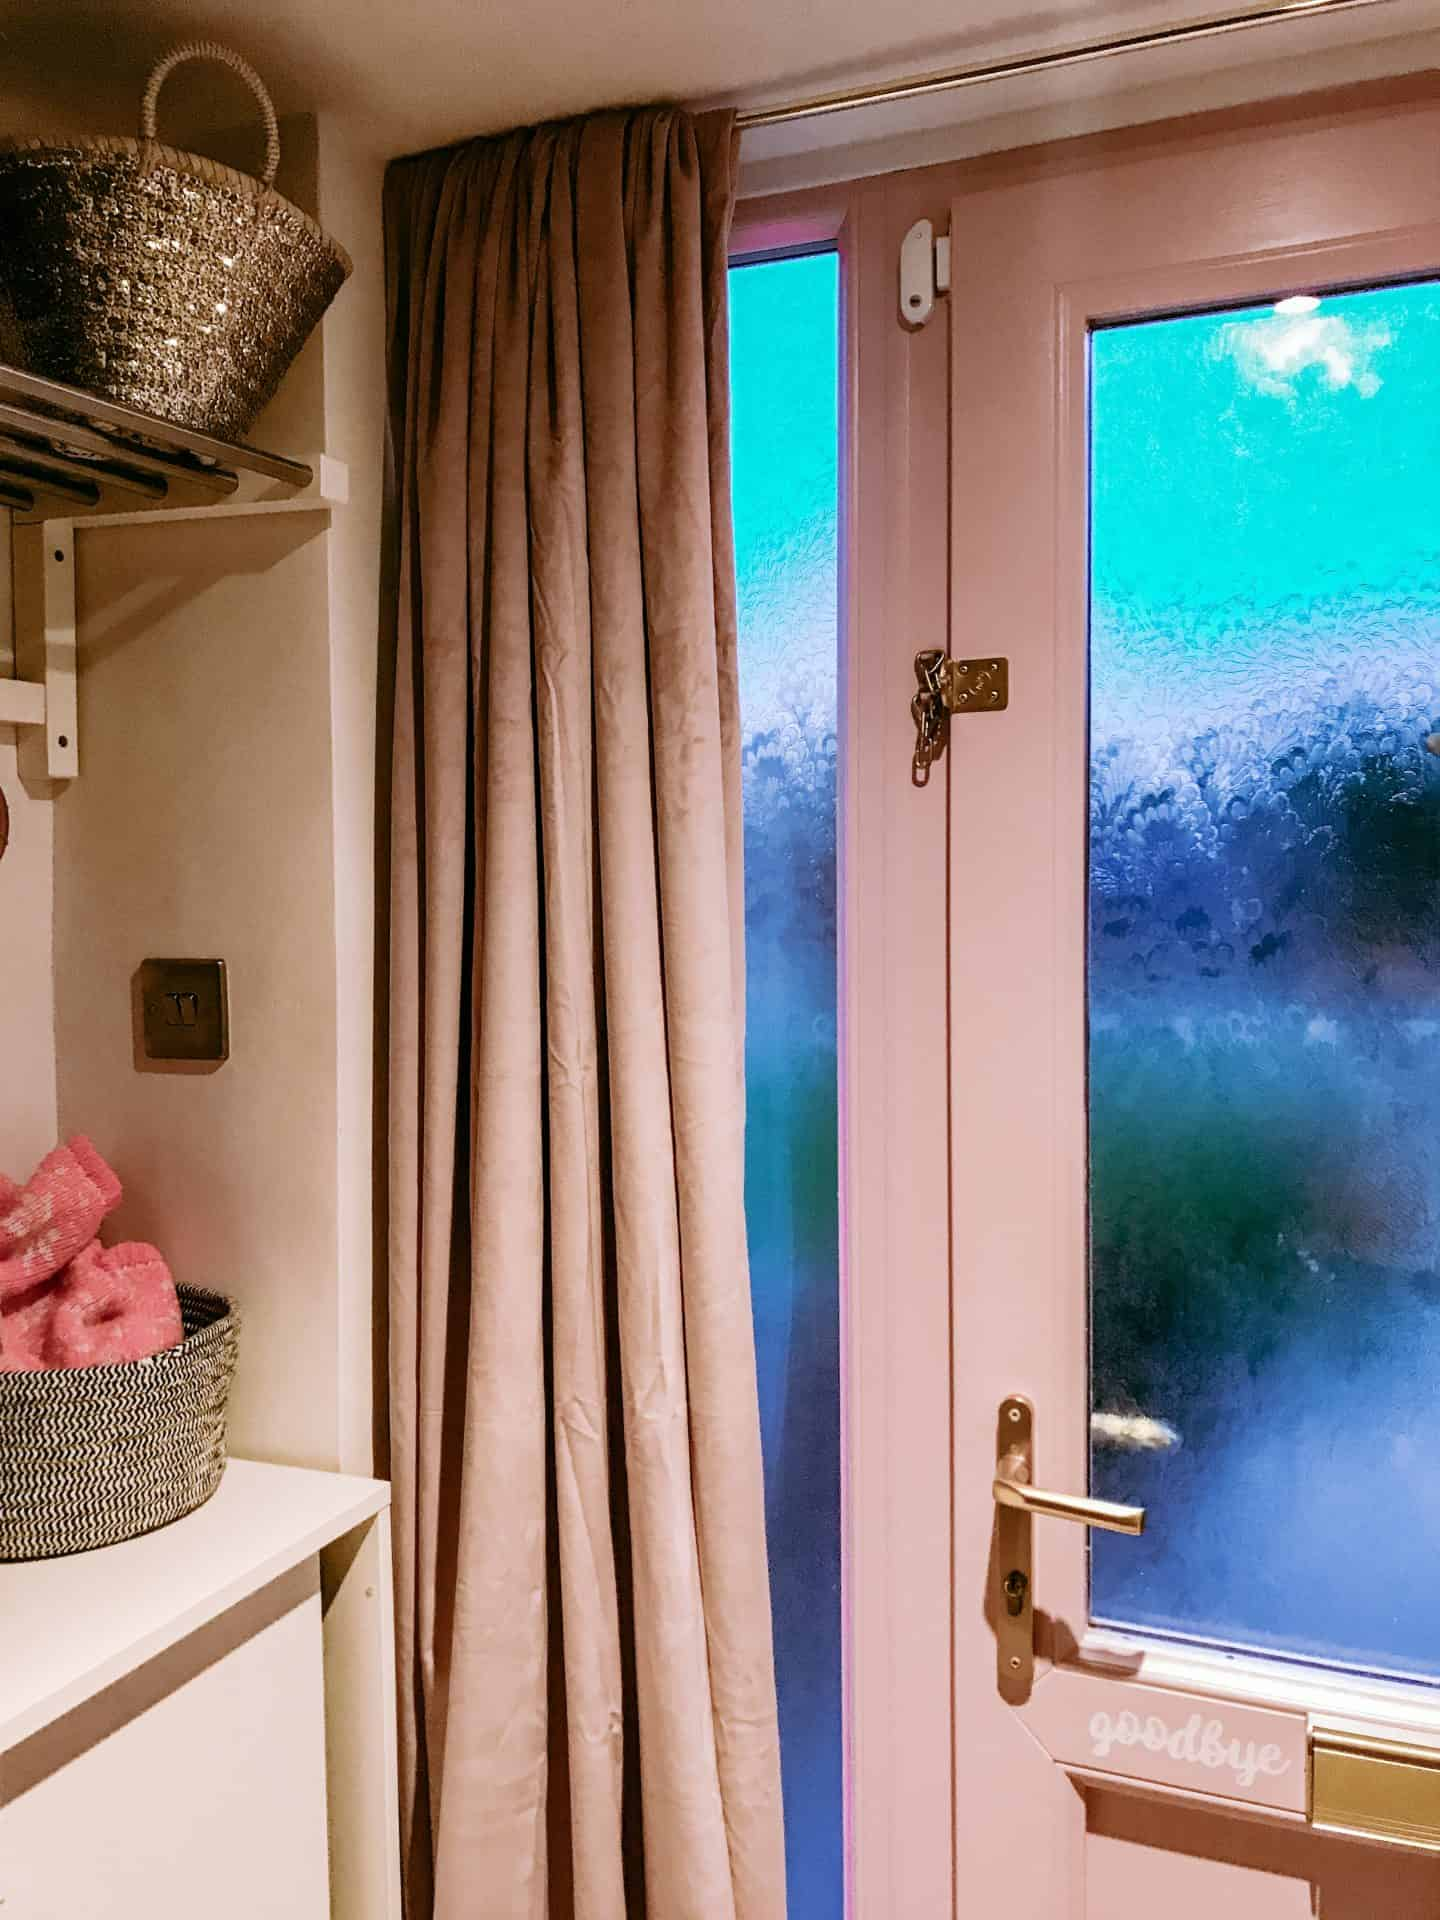 Use a velvet curtain behind your door to block draughts and make your home more cosy